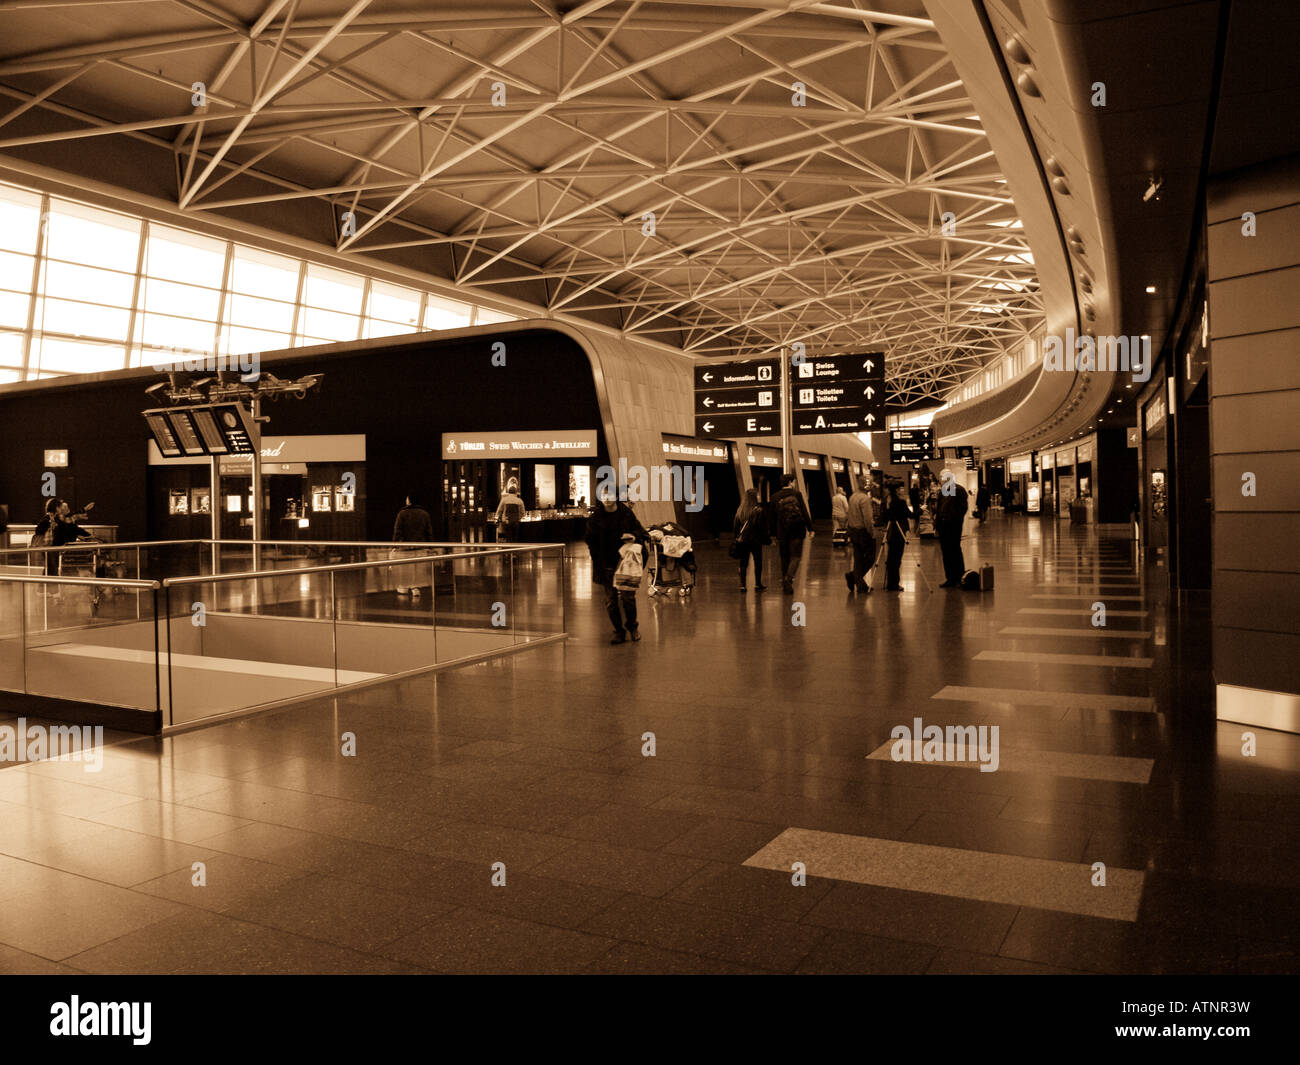 A sepia-toned shot of Zurich Airport. - Stock Image